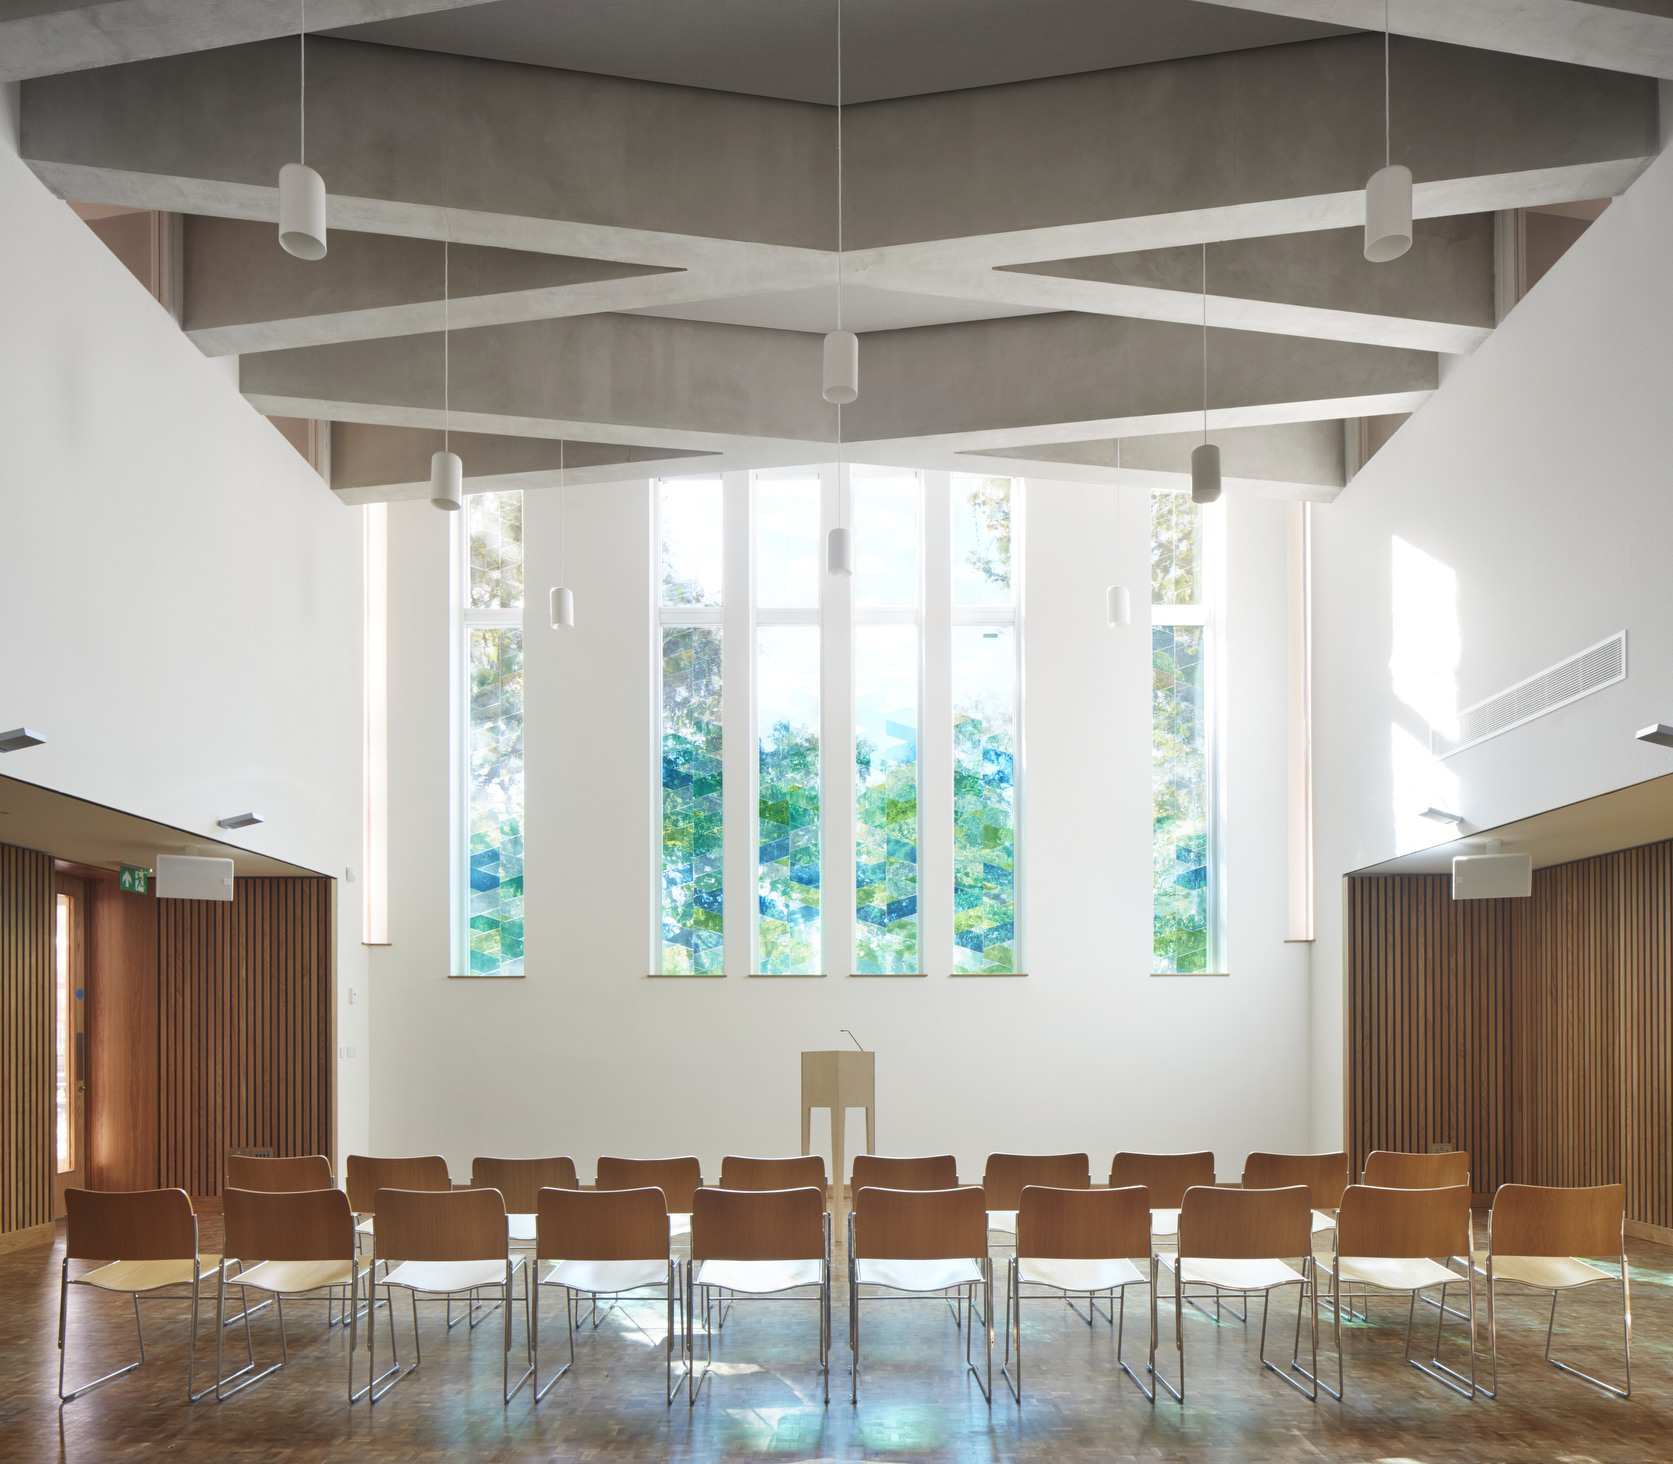 Presidents' Awards 2019 Highly Commended -  Bethnal Green Mission Church - Main Worship Space - Gatti Routh Rhodes Architects -  Photo by Jack Hobhouse